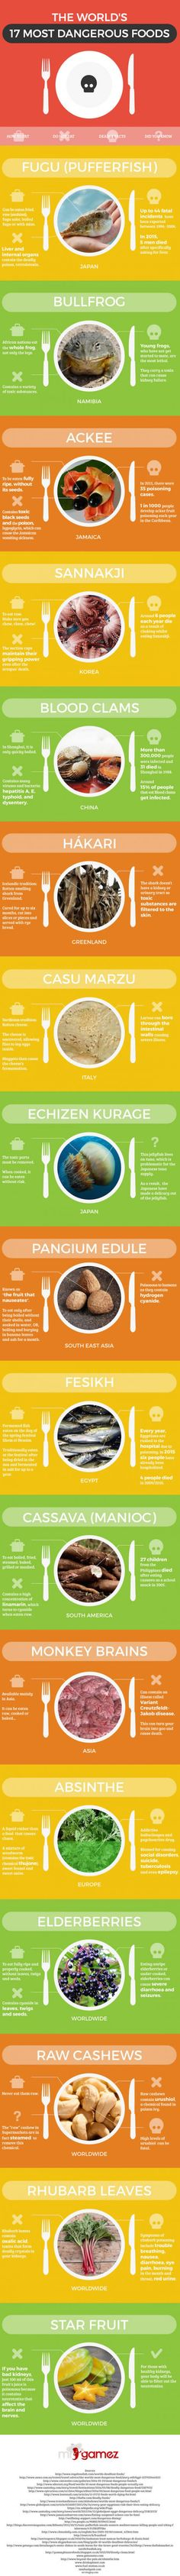 World's 17 Most Dangerous Foods People Actually Eat